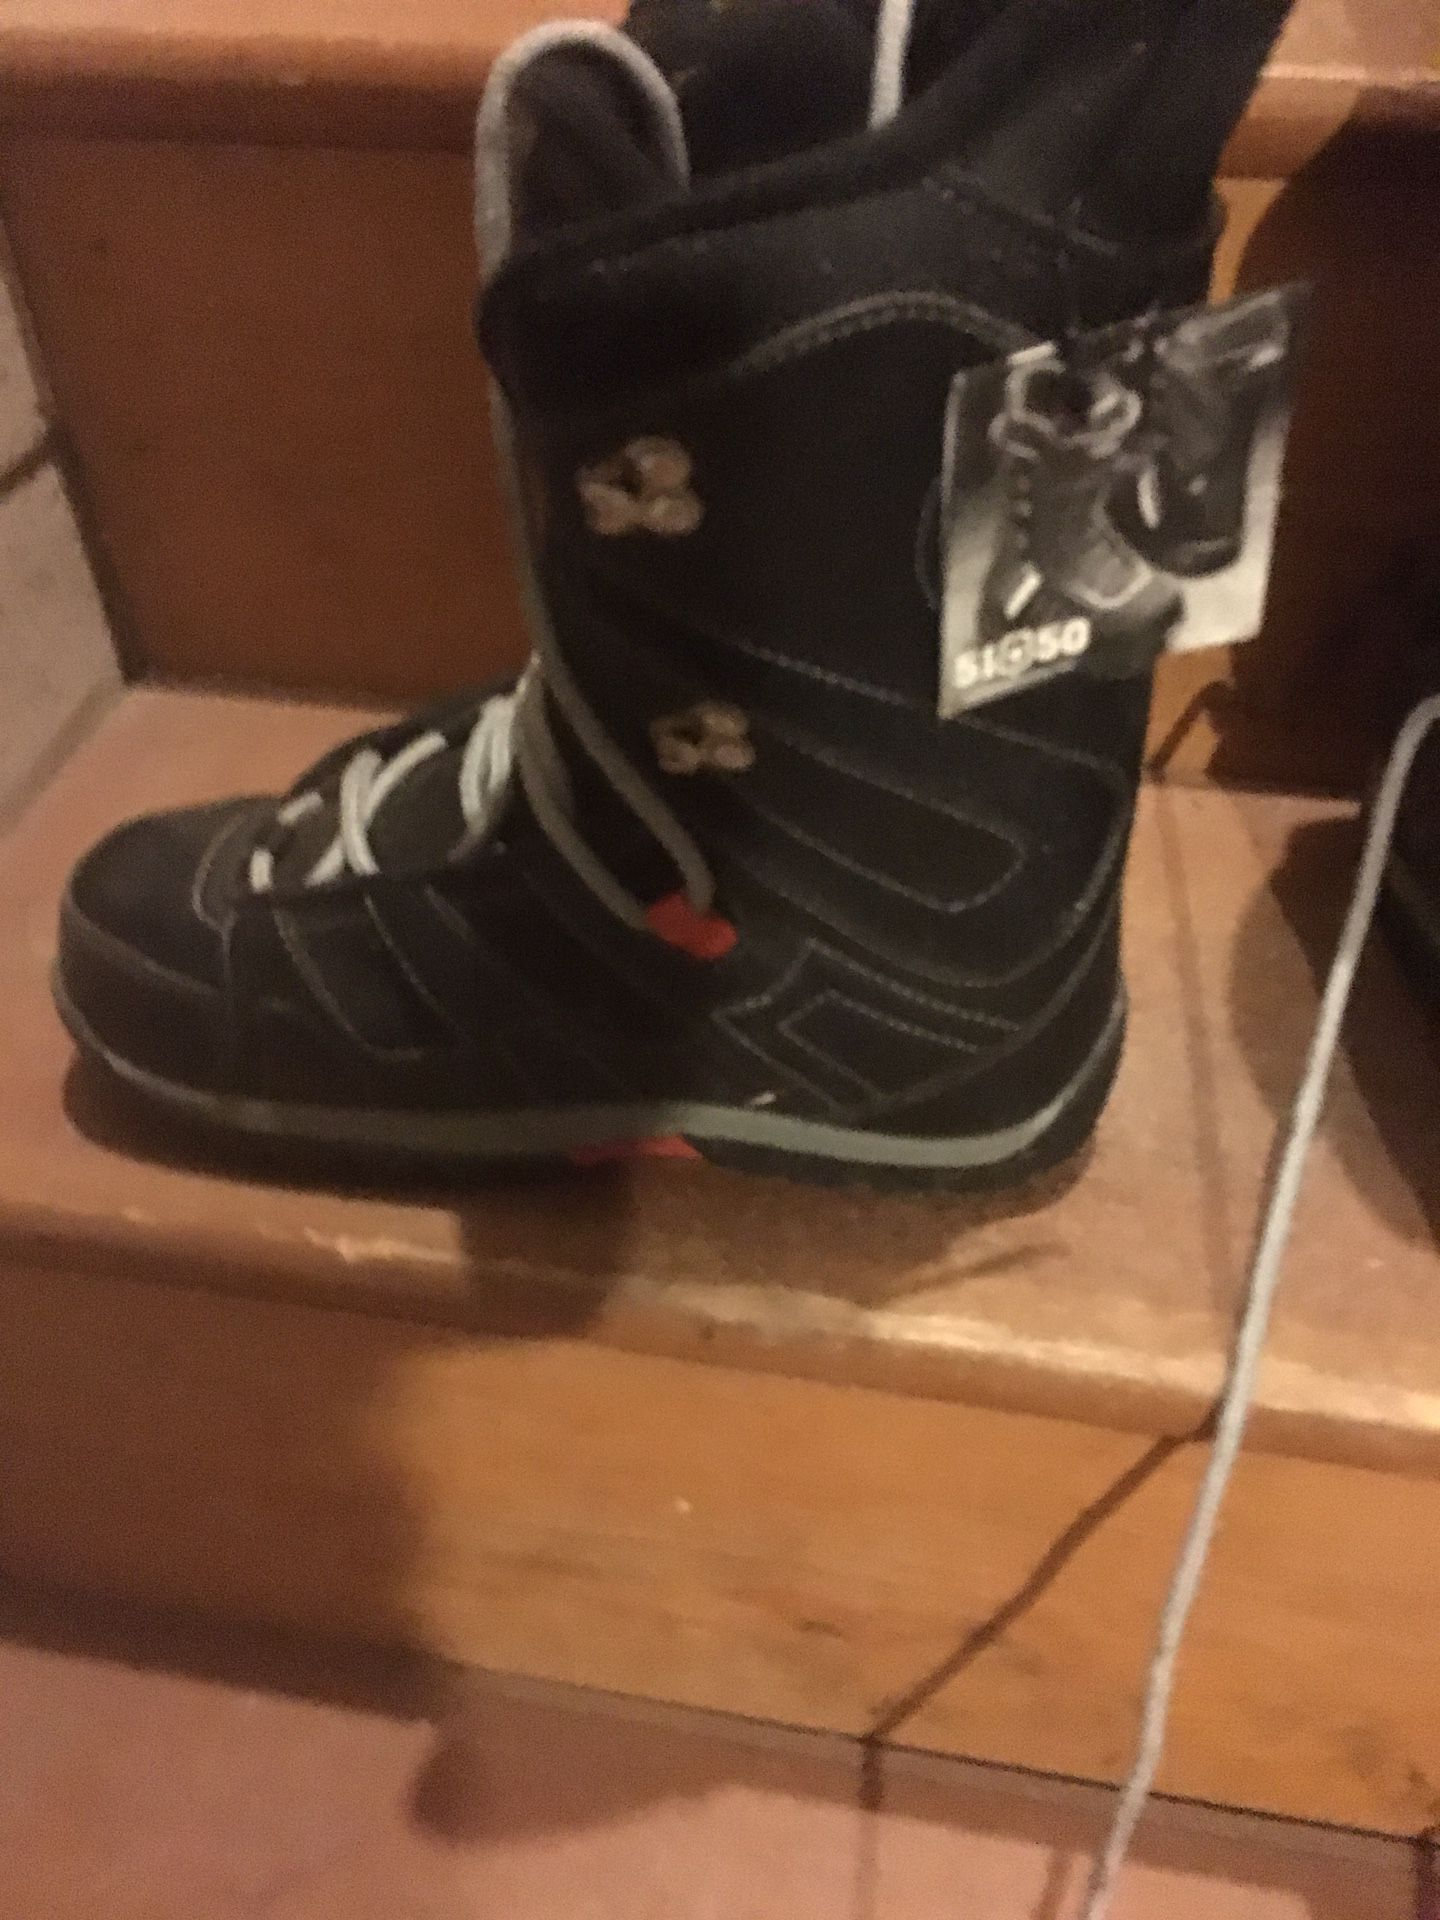 size 6 snow boarding boots